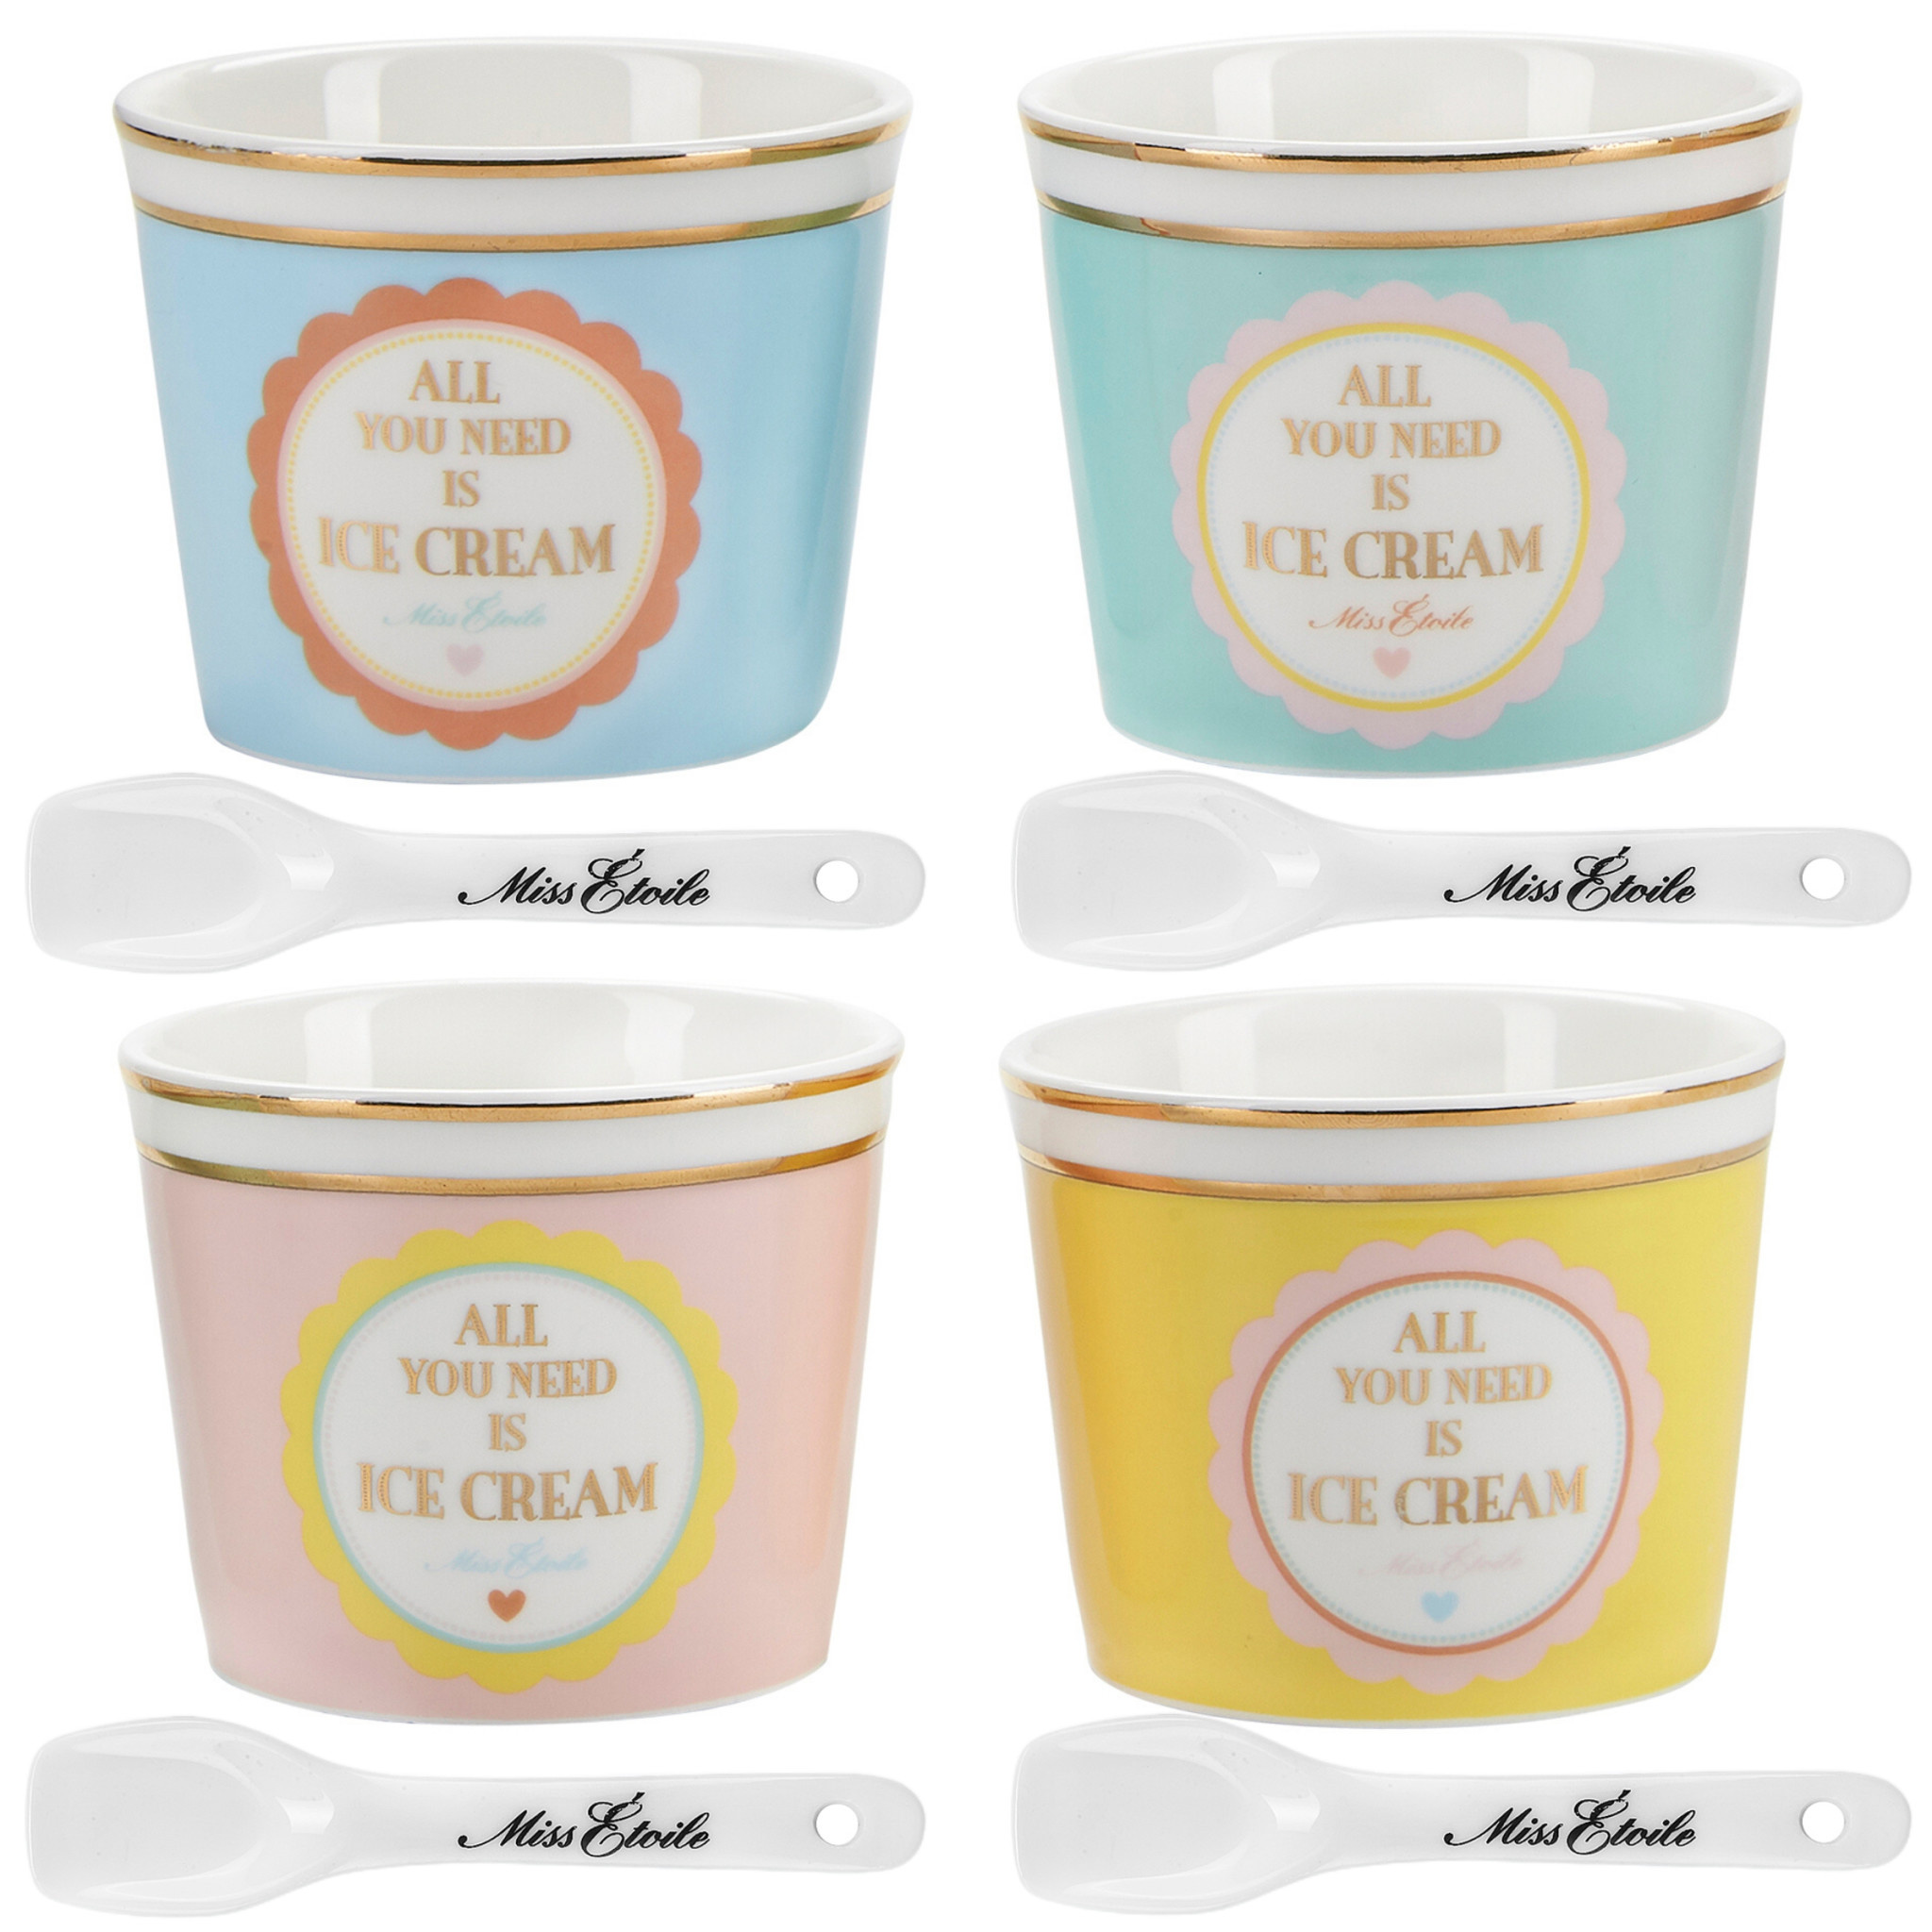 Miss Etoile Set - All you need is Ice Cream